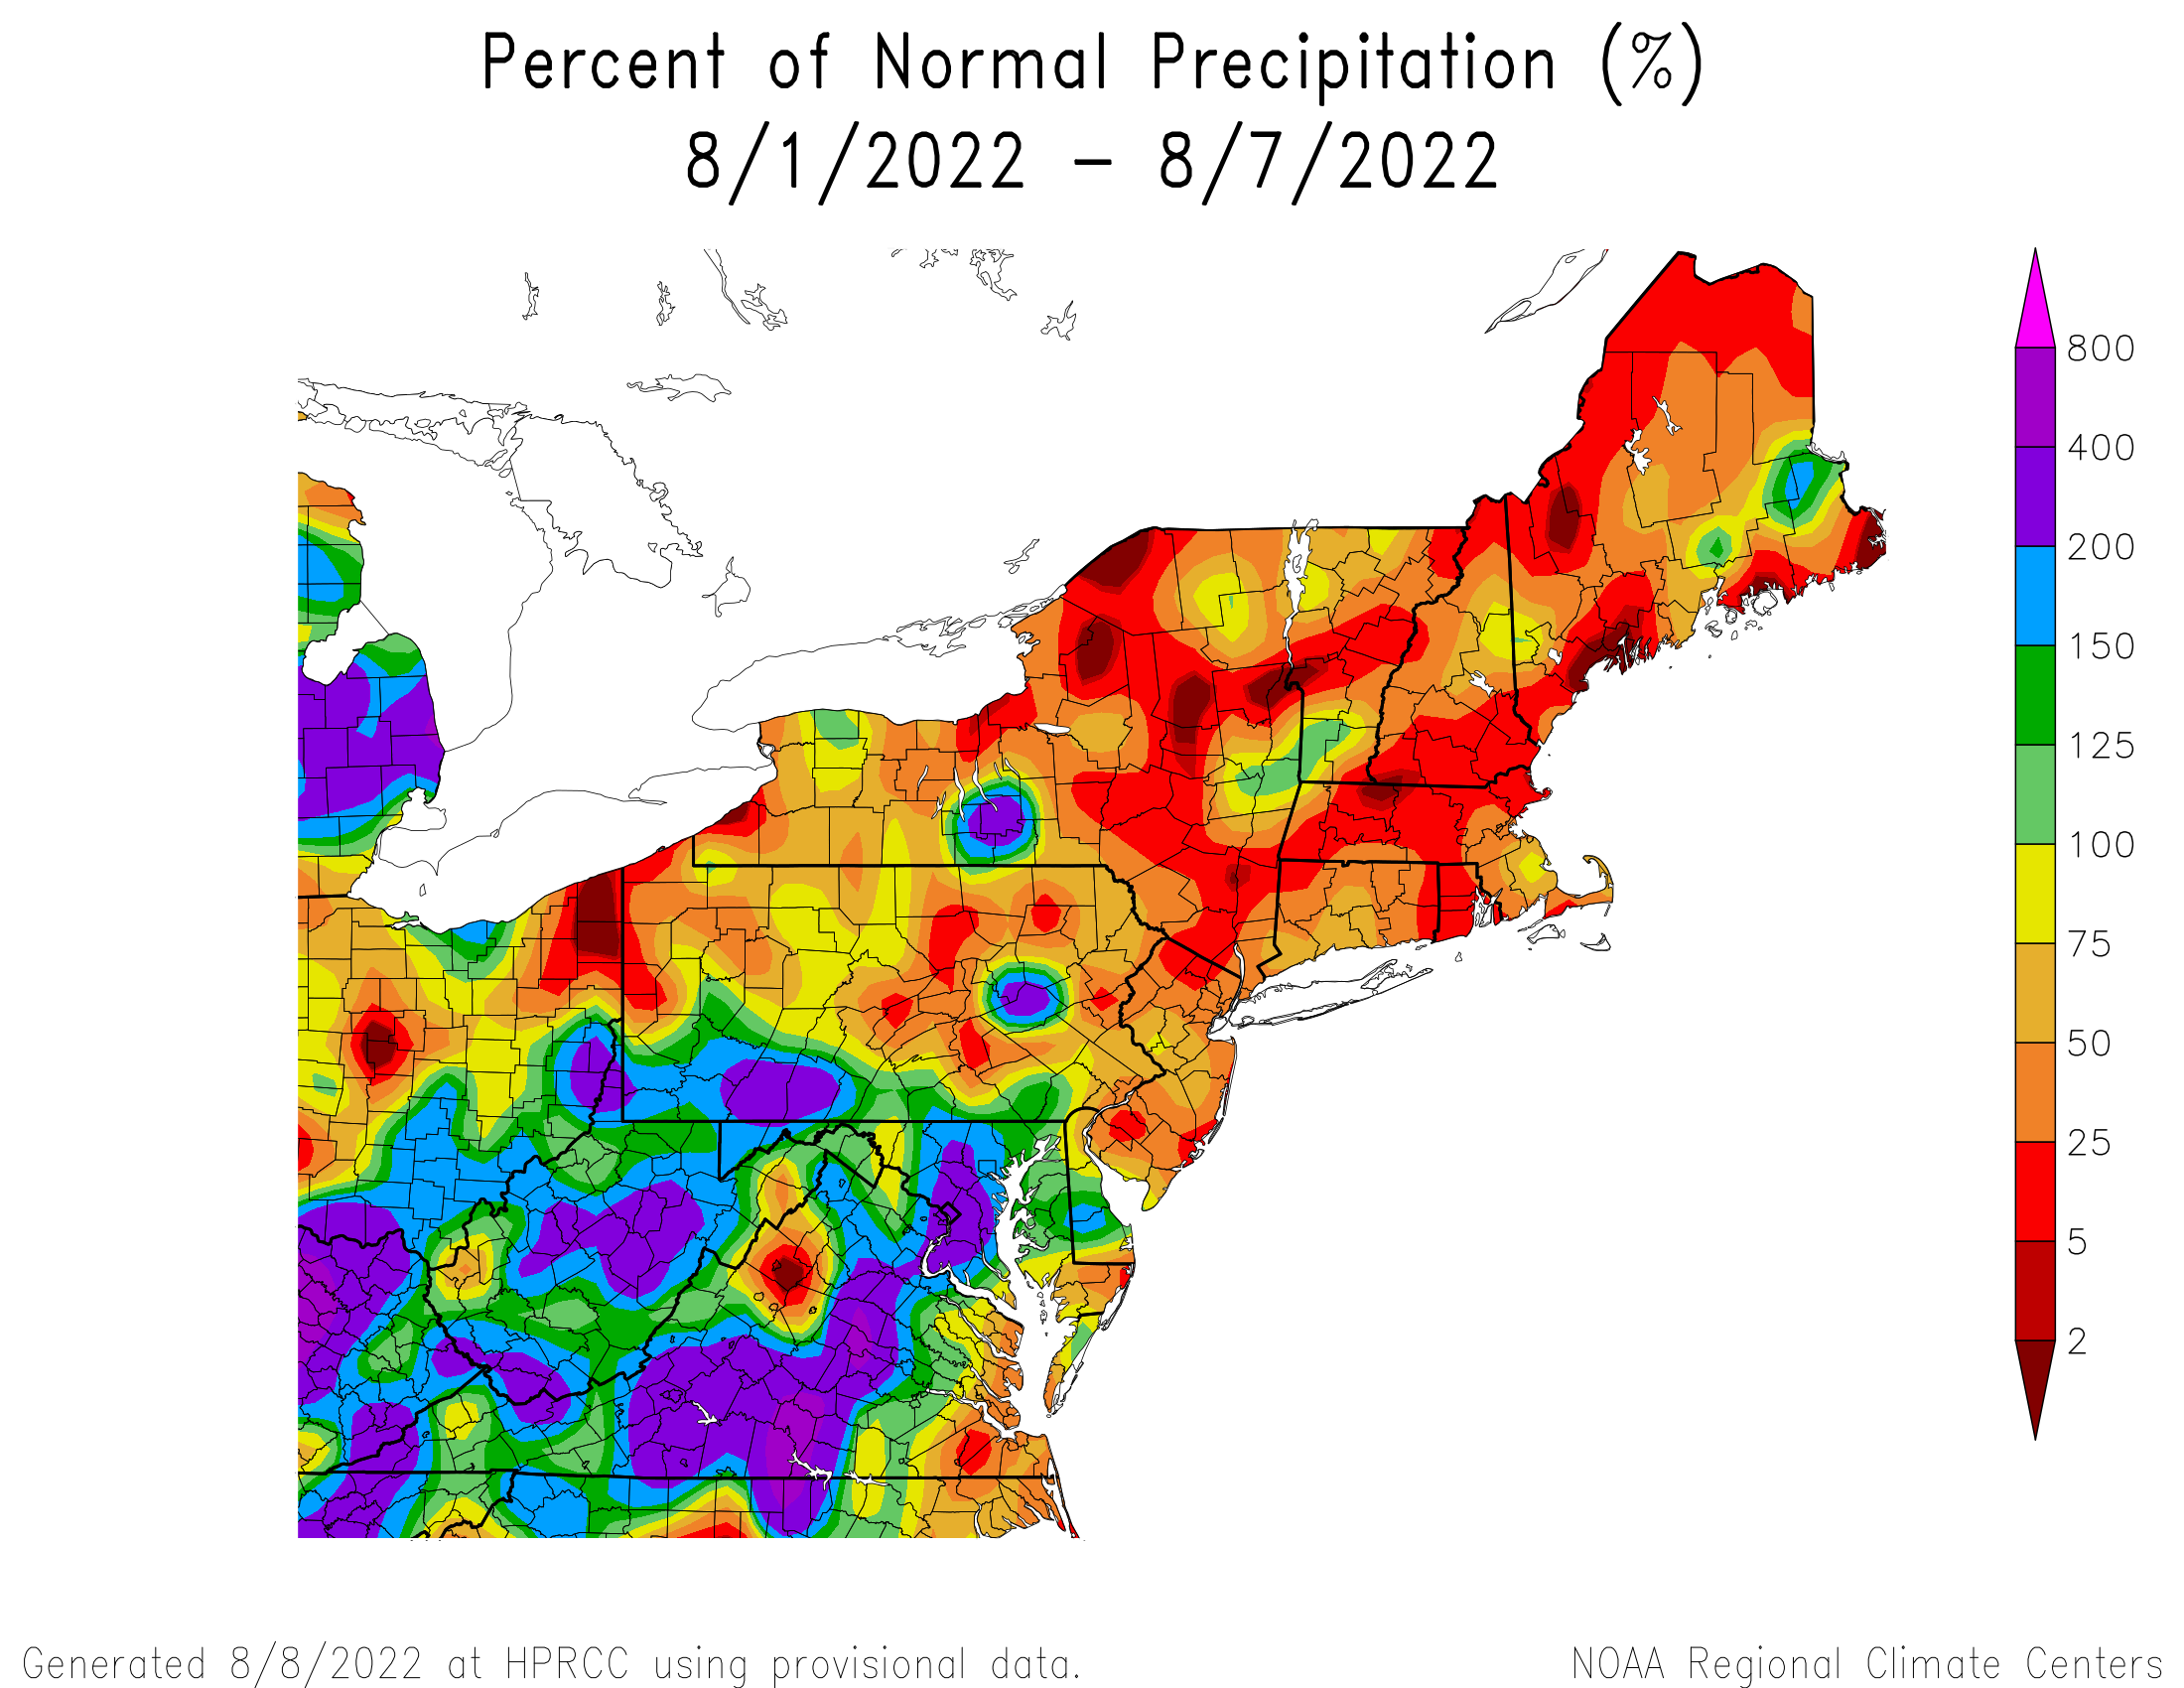 7-Day Precipitation - Percentage of Normal